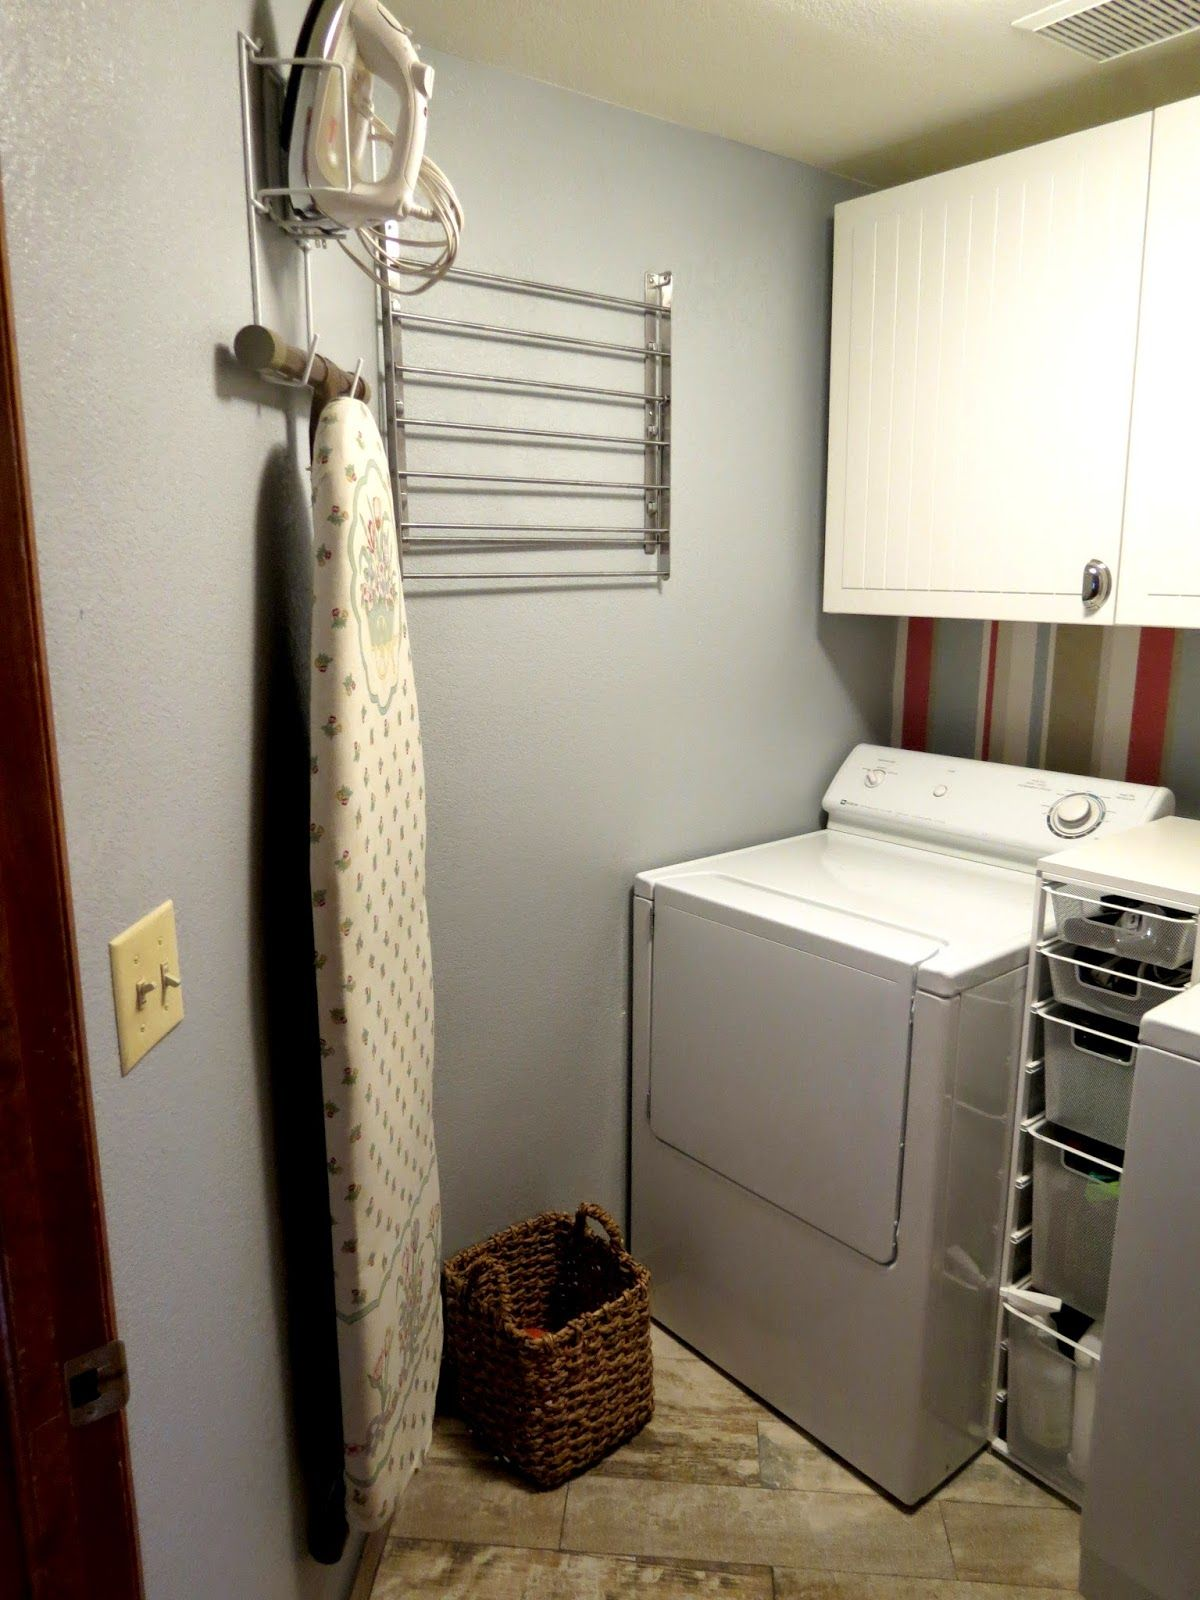 Laundry Room Remodel, Country Chic, White Slatted Cabinets, Stripped Wallpaper